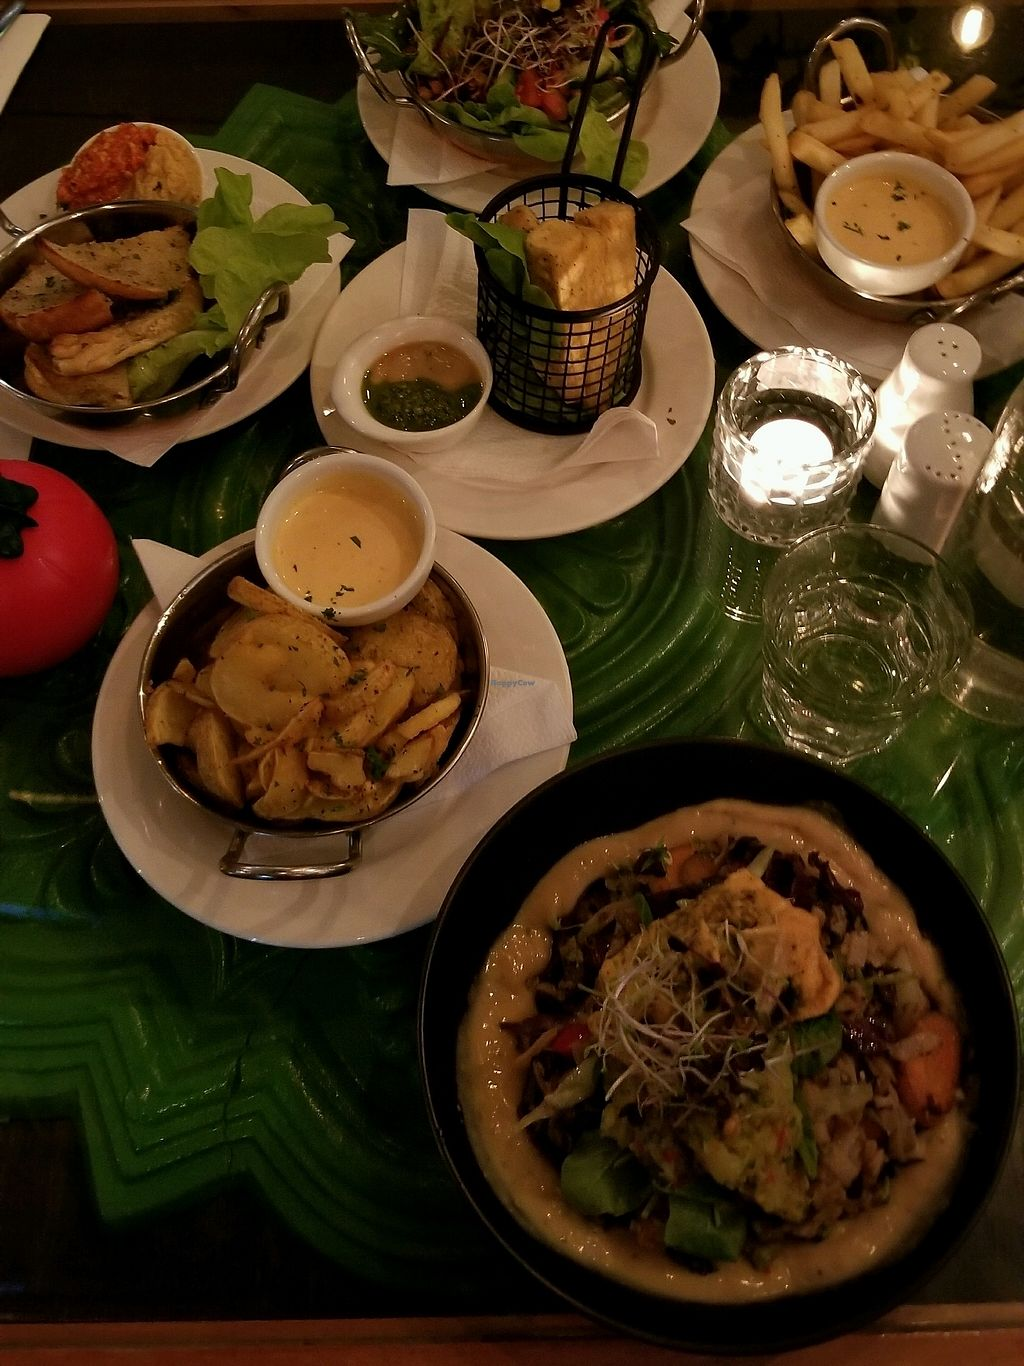 """Photo of East St Vegetarian Cafe and Bar  by <a href=""""/members/profile/AndyTheVWDude"""">AndyTheVWDude</a> <br/>Stack, Garbanzo fingers, Sides ~ All great! <br/> April 16, 2018  - <a href='/contact/abuse/image/37335/386832'>Report</a>"""